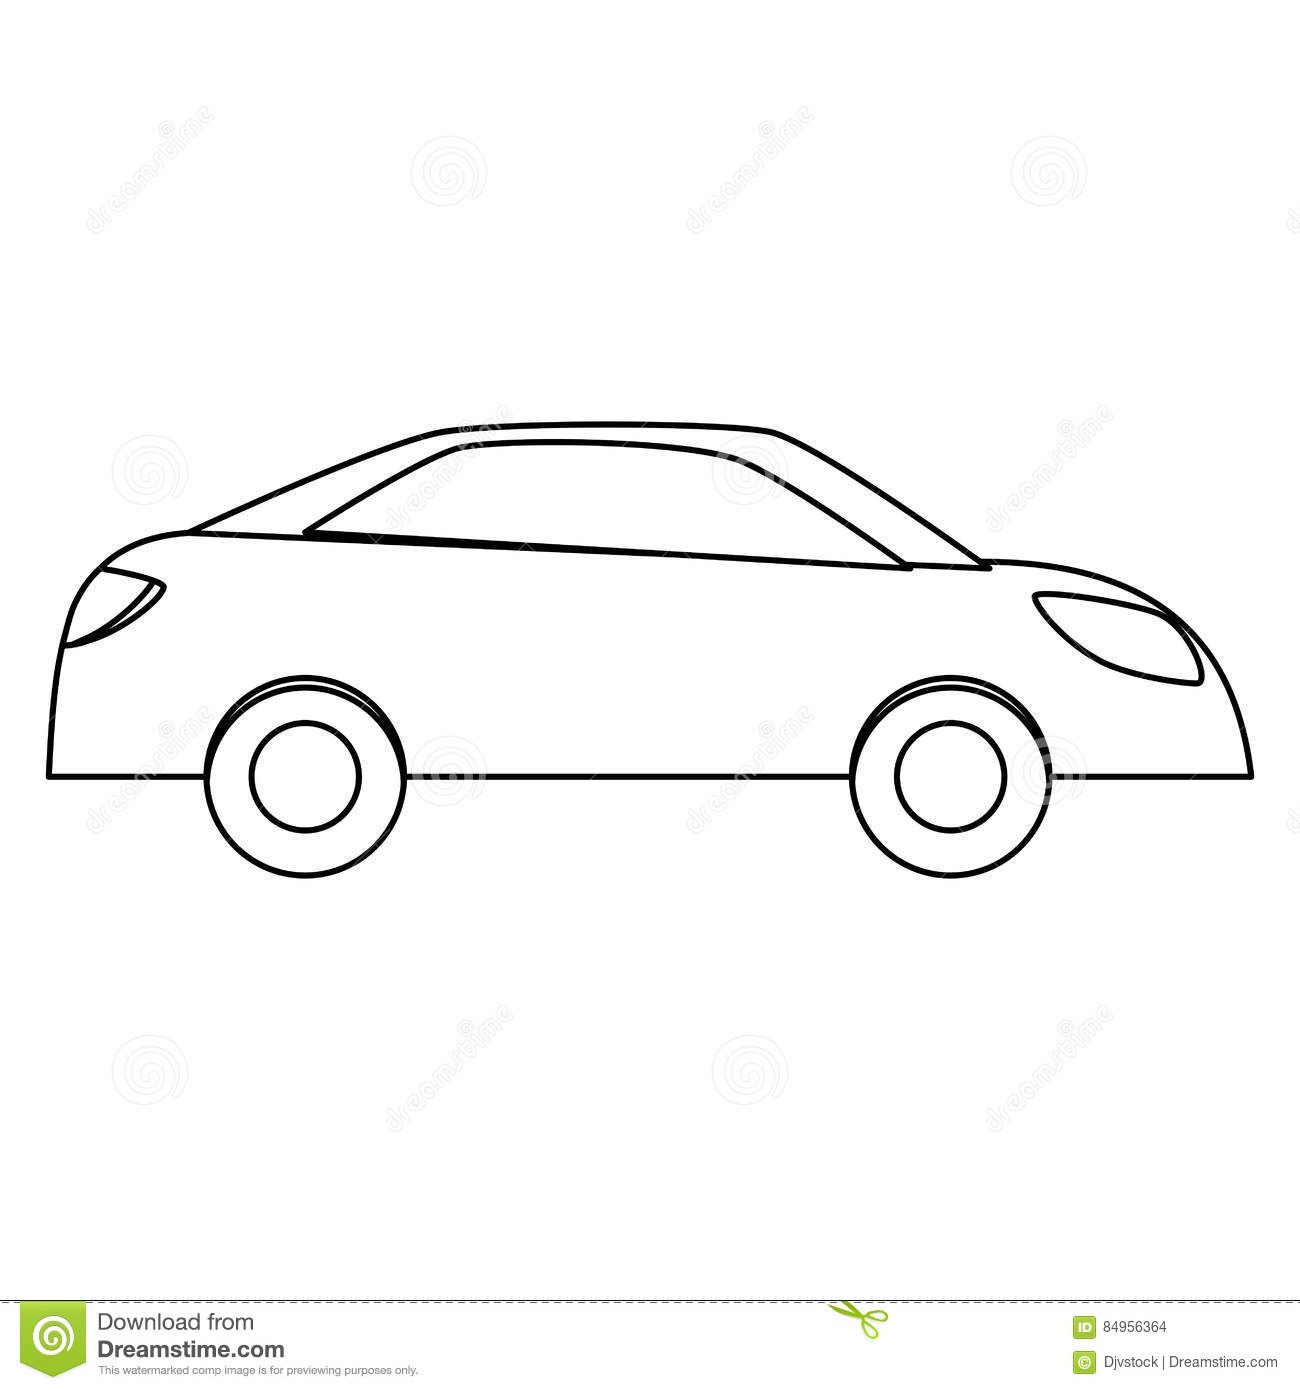 Simple car sideview icon image stock illustration